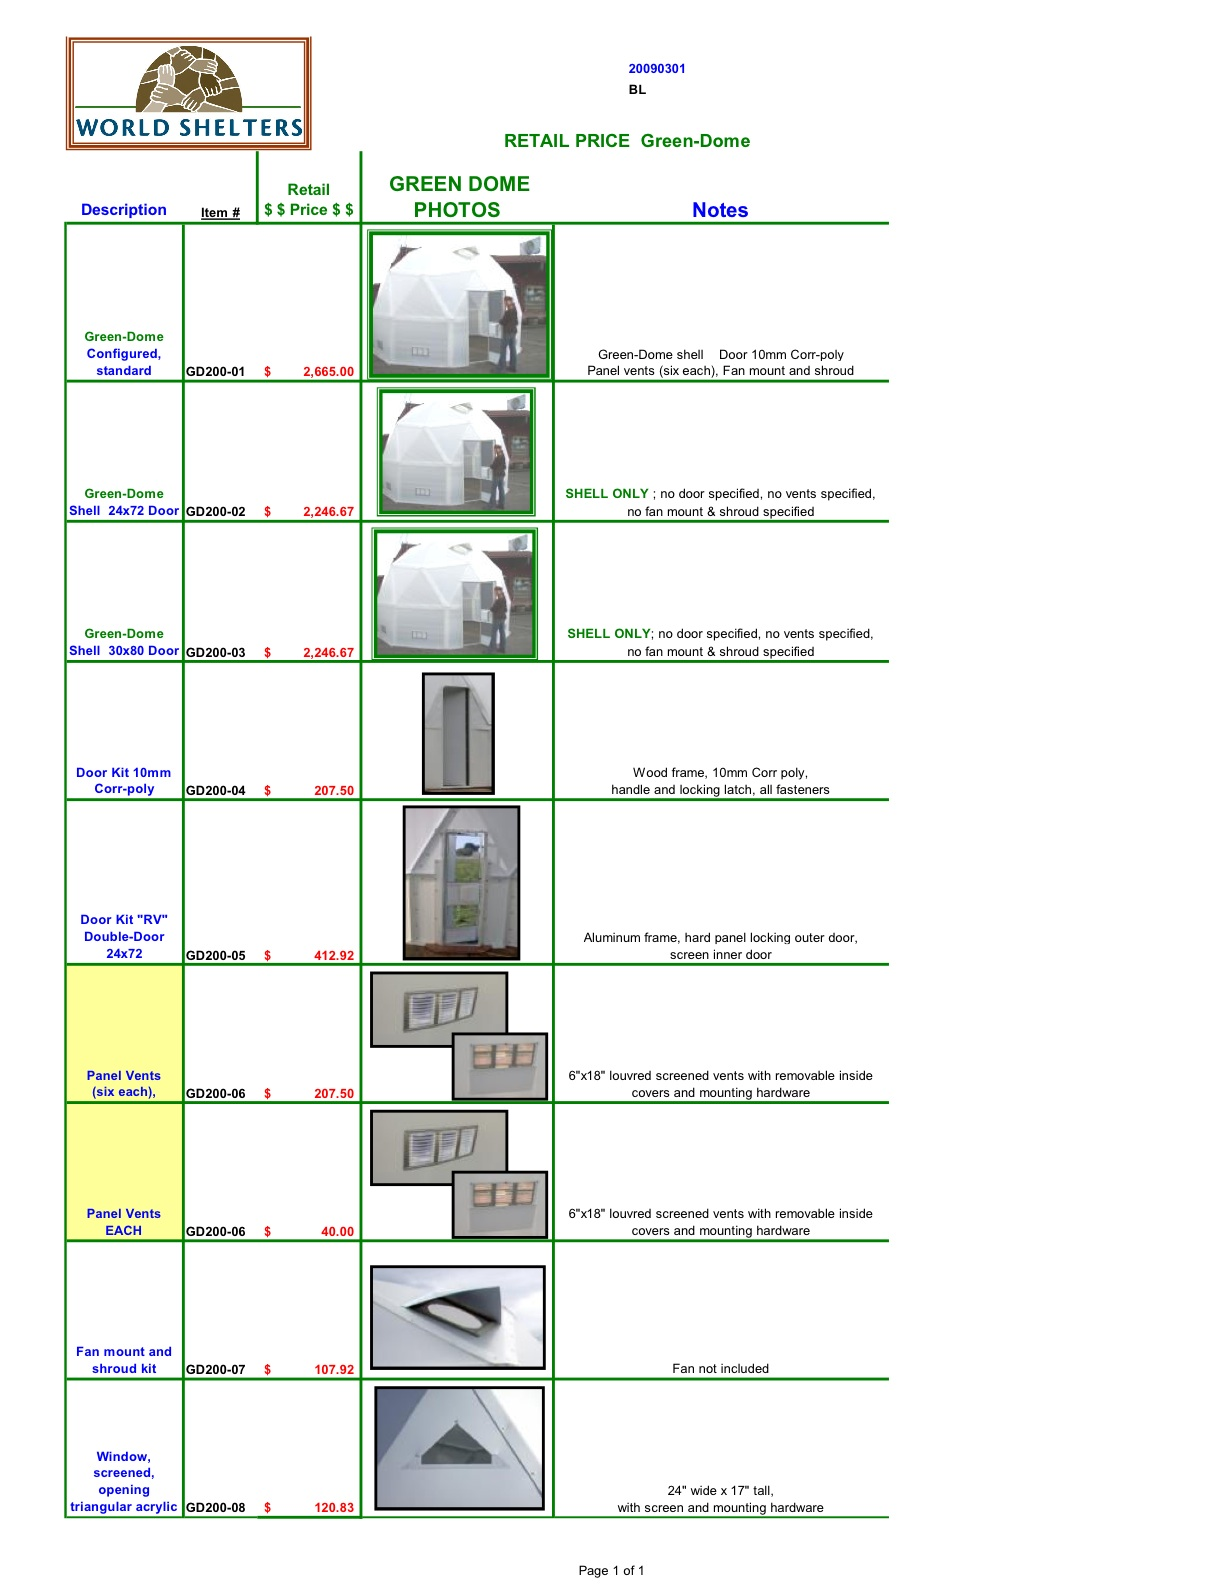 retail-price-list-for-green-dome-200903